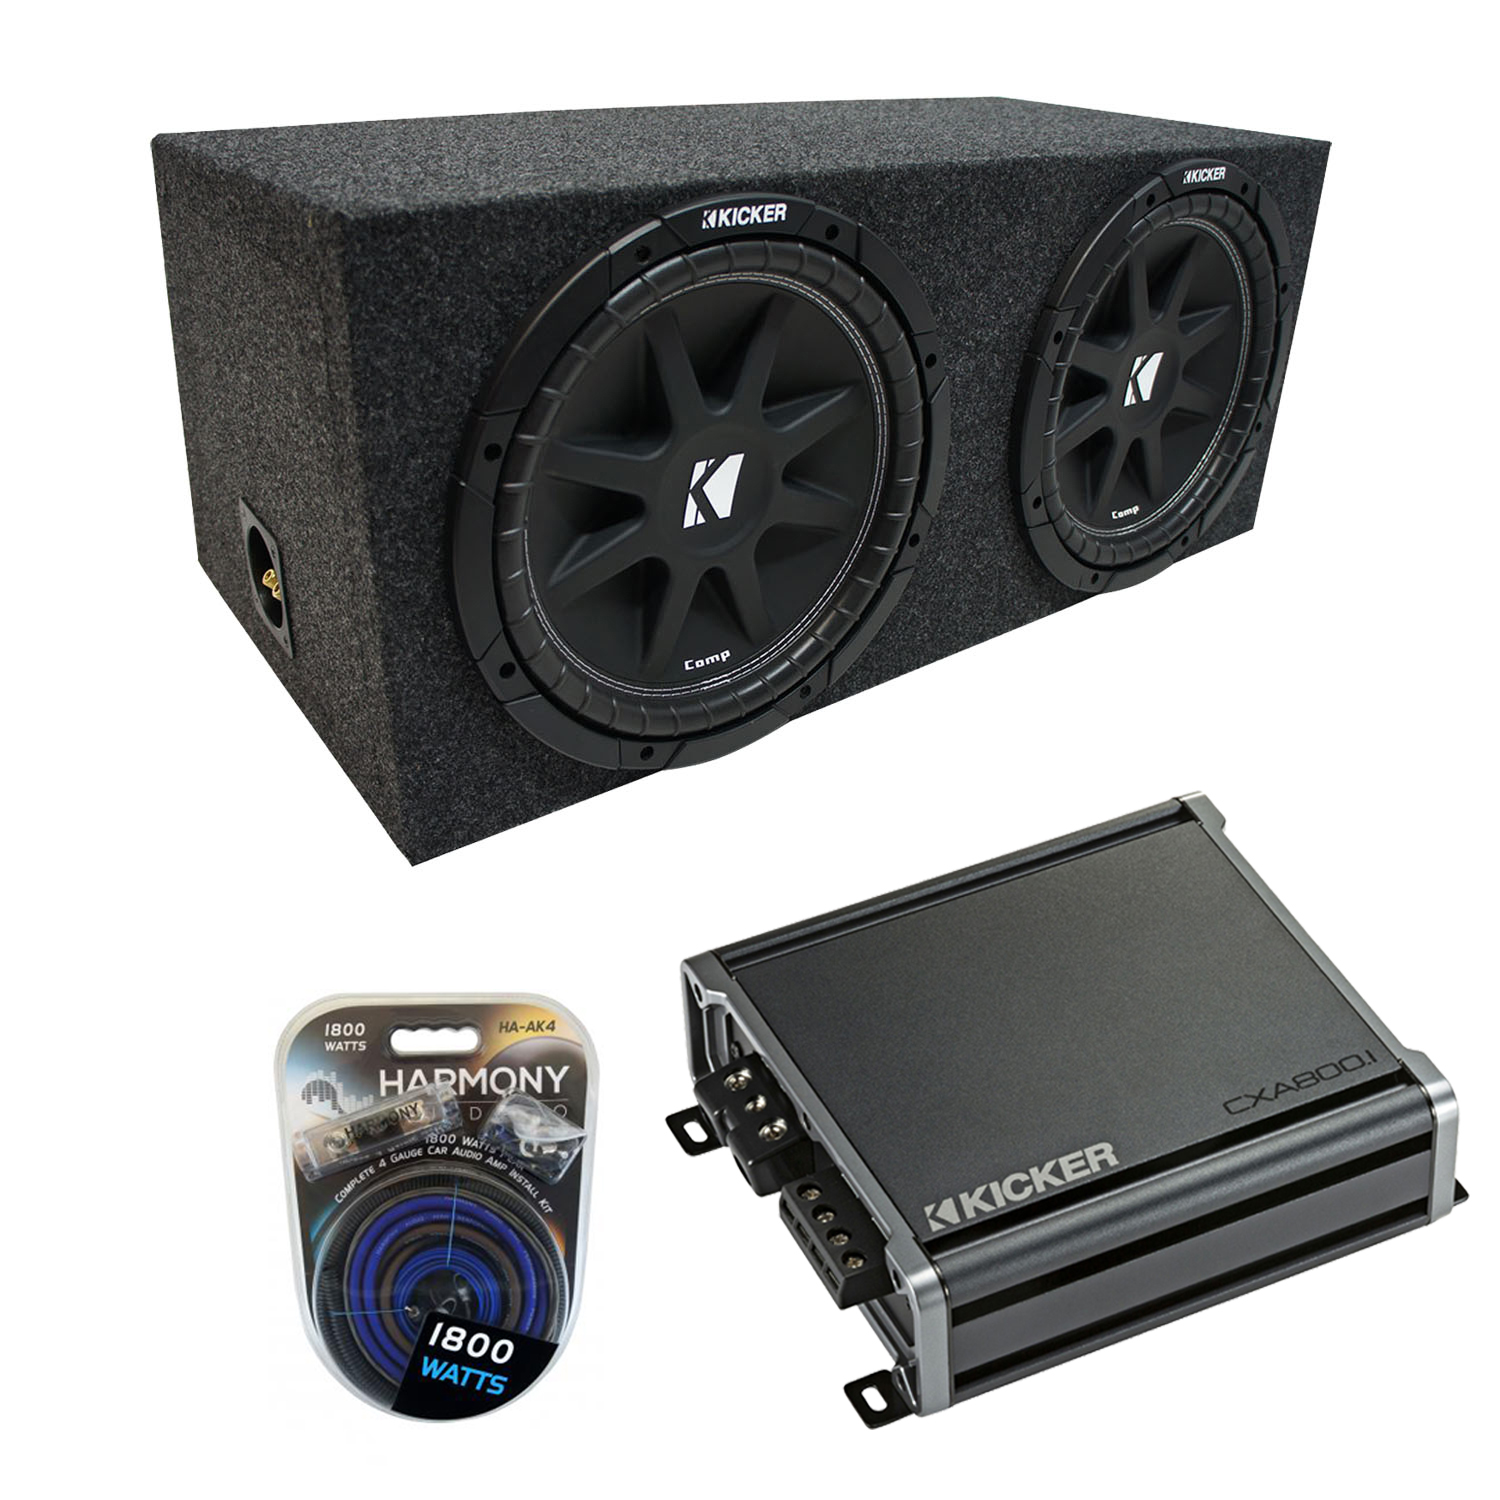 "Universal Car Stereo Rearfire Sealed Dual 12"" Kicker Comp C12 Sub Box Enclosure & CX600.1 Amp"